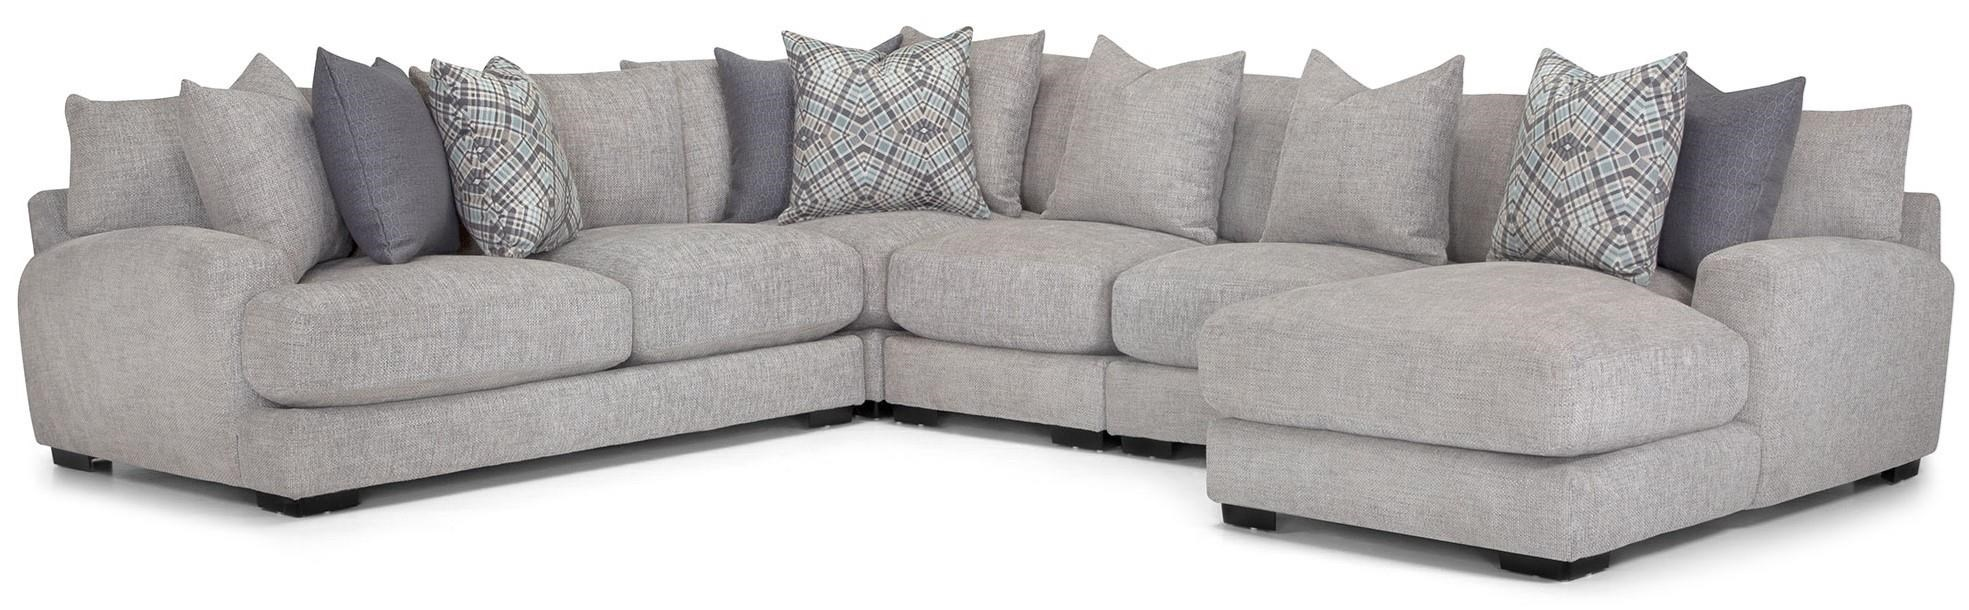 903 5 Pc sectional -Grey by Franklin at Furniture Fair - North Carolina